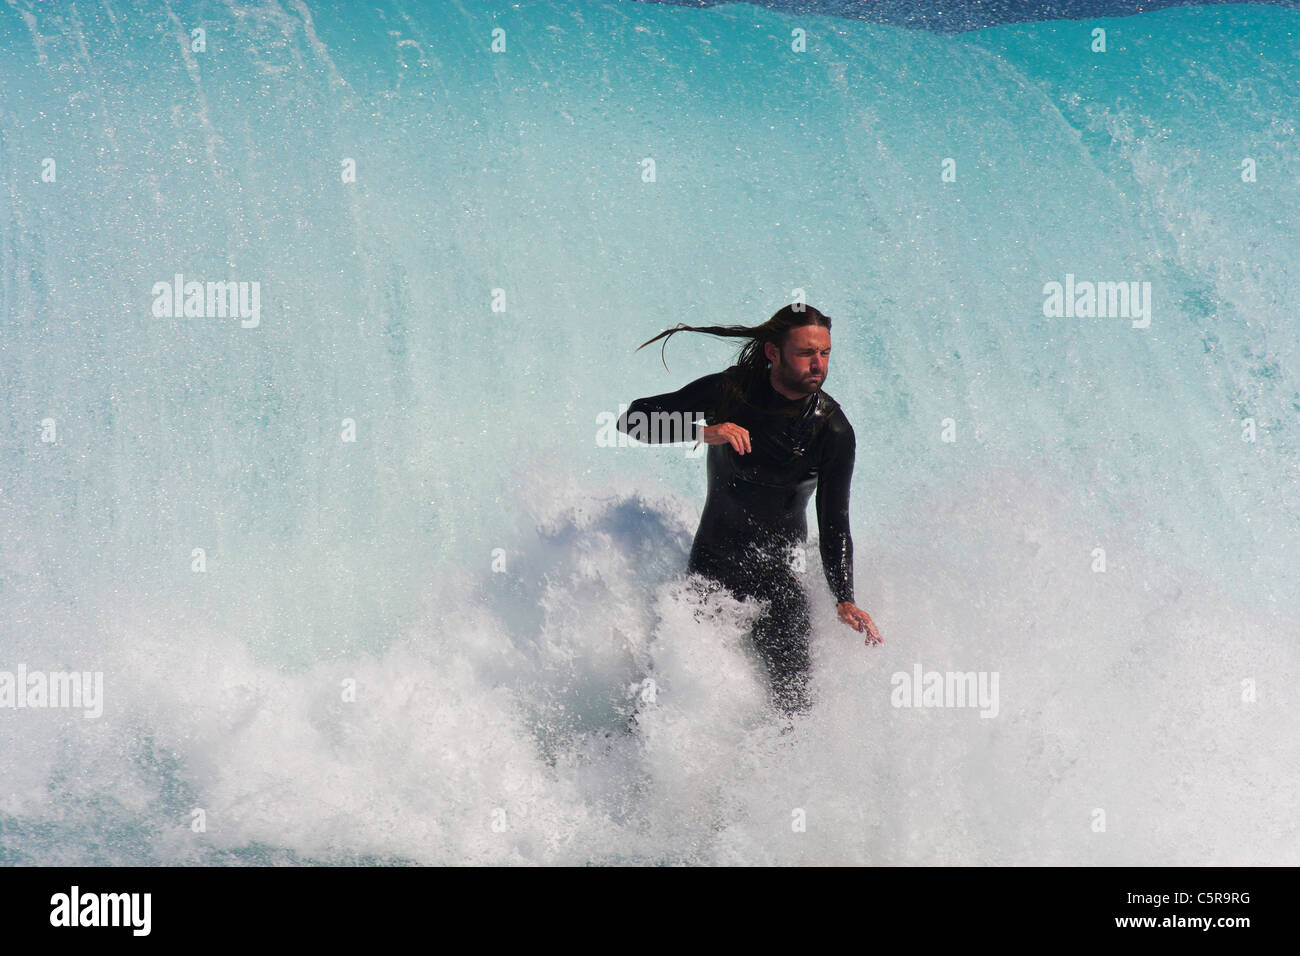 This surfer takes a deep breath as he is about to be taken out by the massive wave behind him. - Stock Image